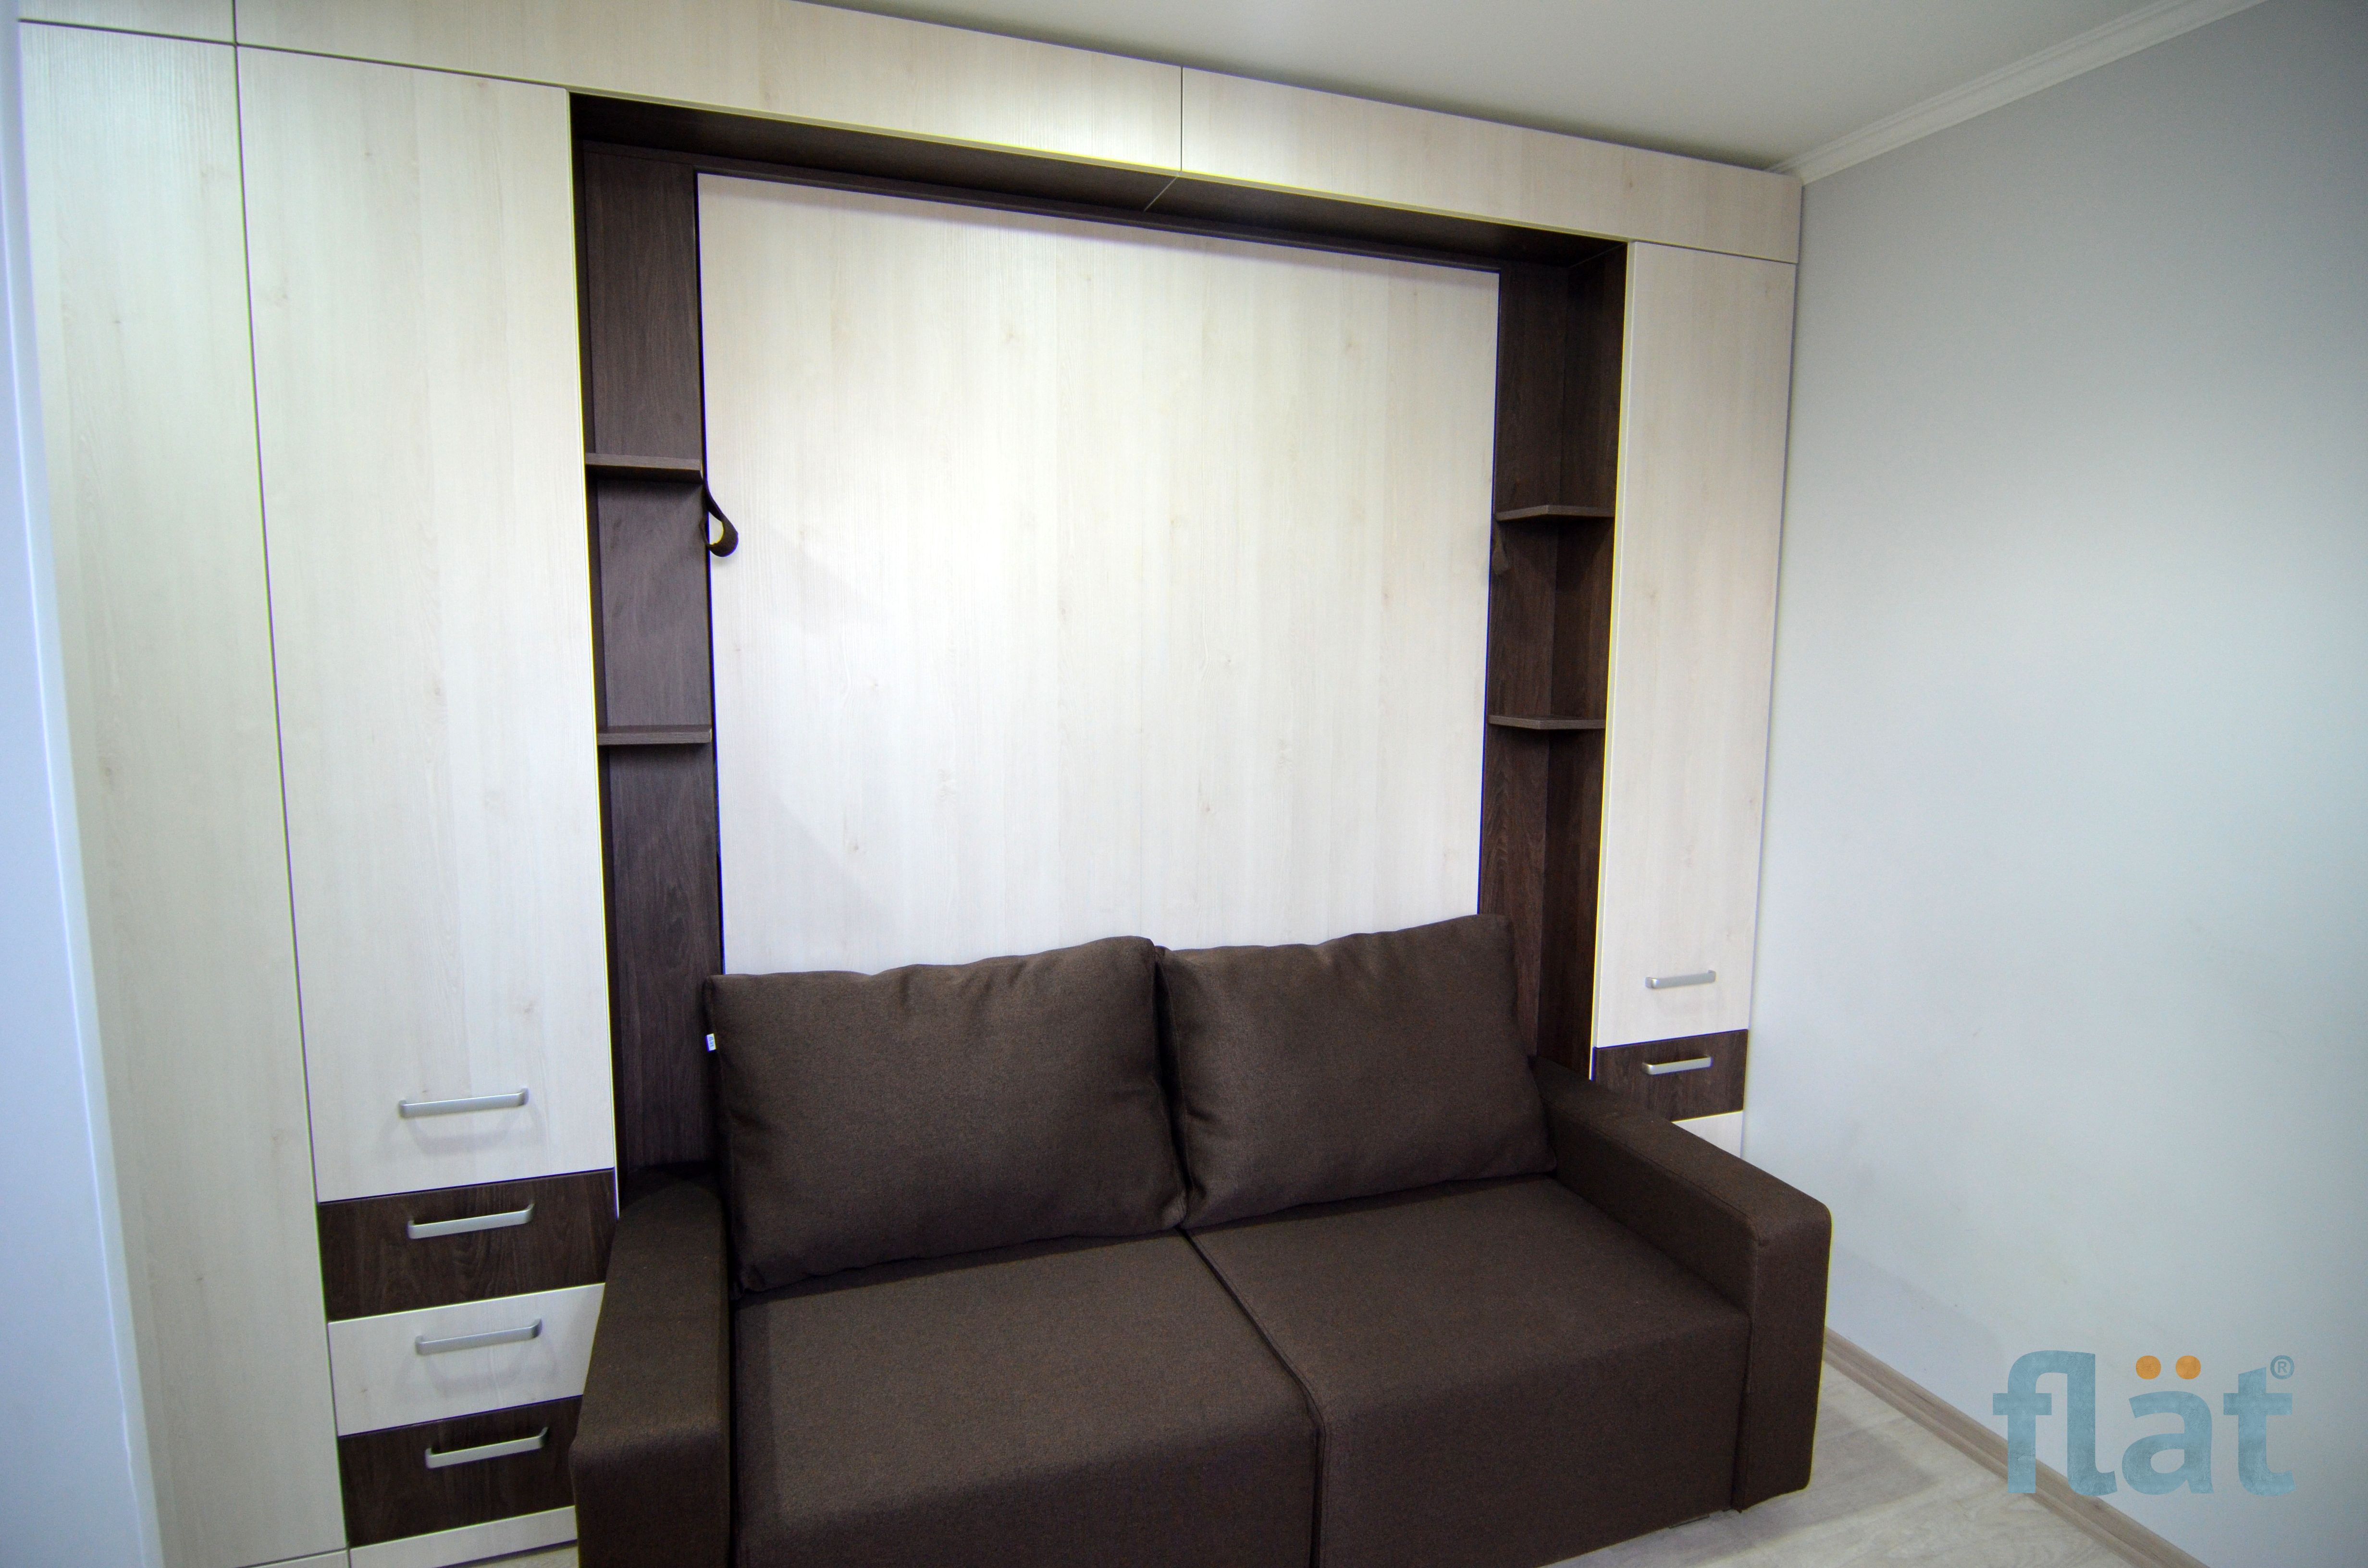 Very small space. Double size wall bed with sofa and